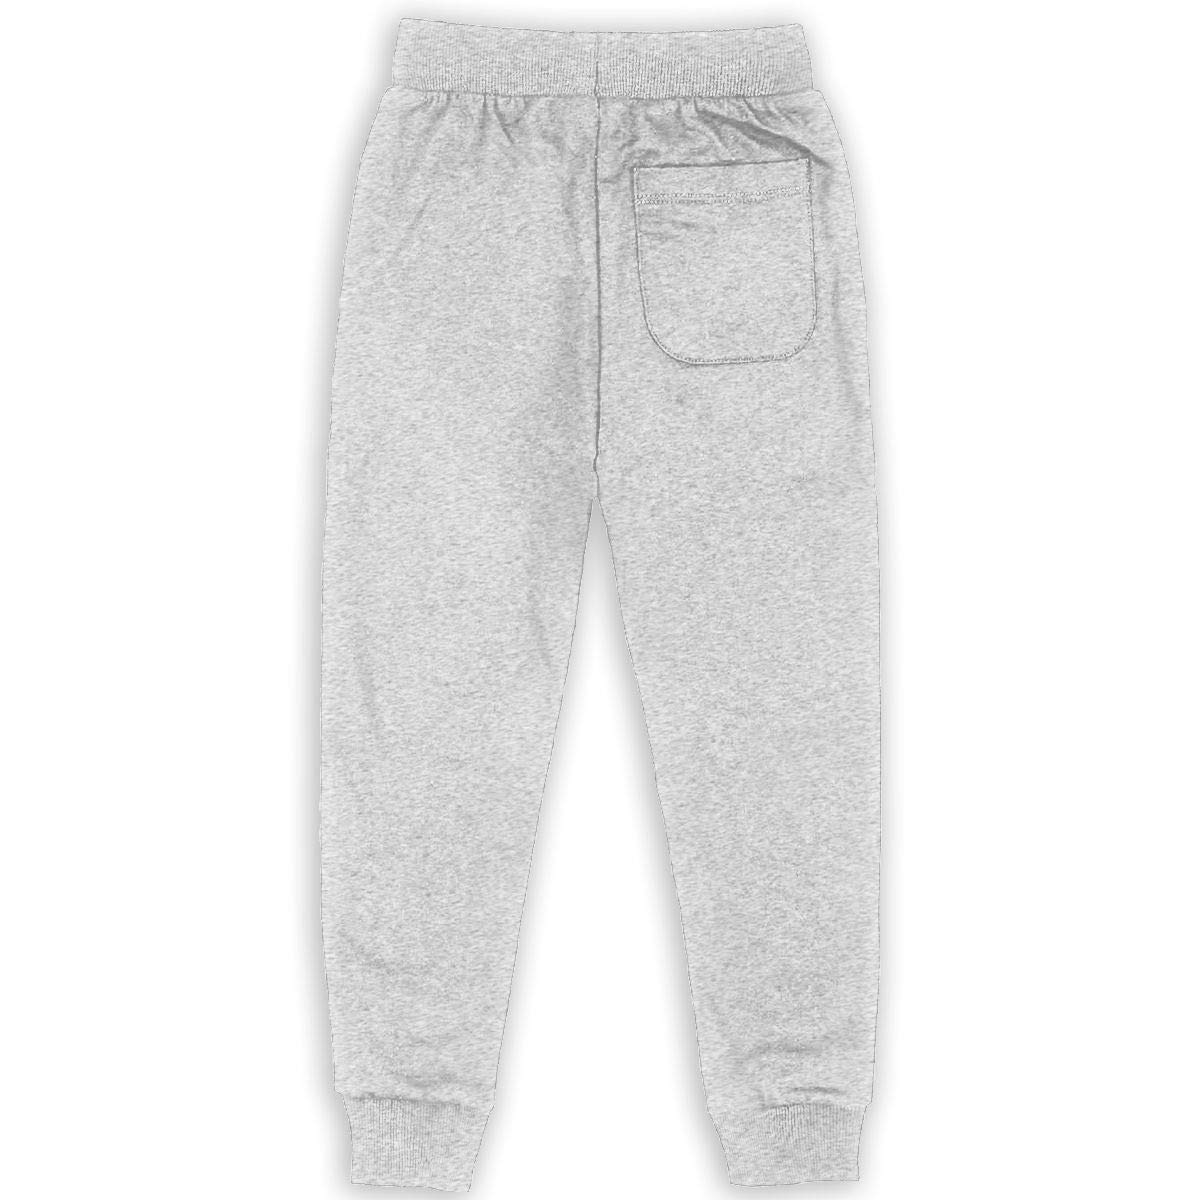 Unisex Teens J Balvin Energ/¡a Fashion Music Band Daily Sweatpants for Boys Gift with Pockets Gift